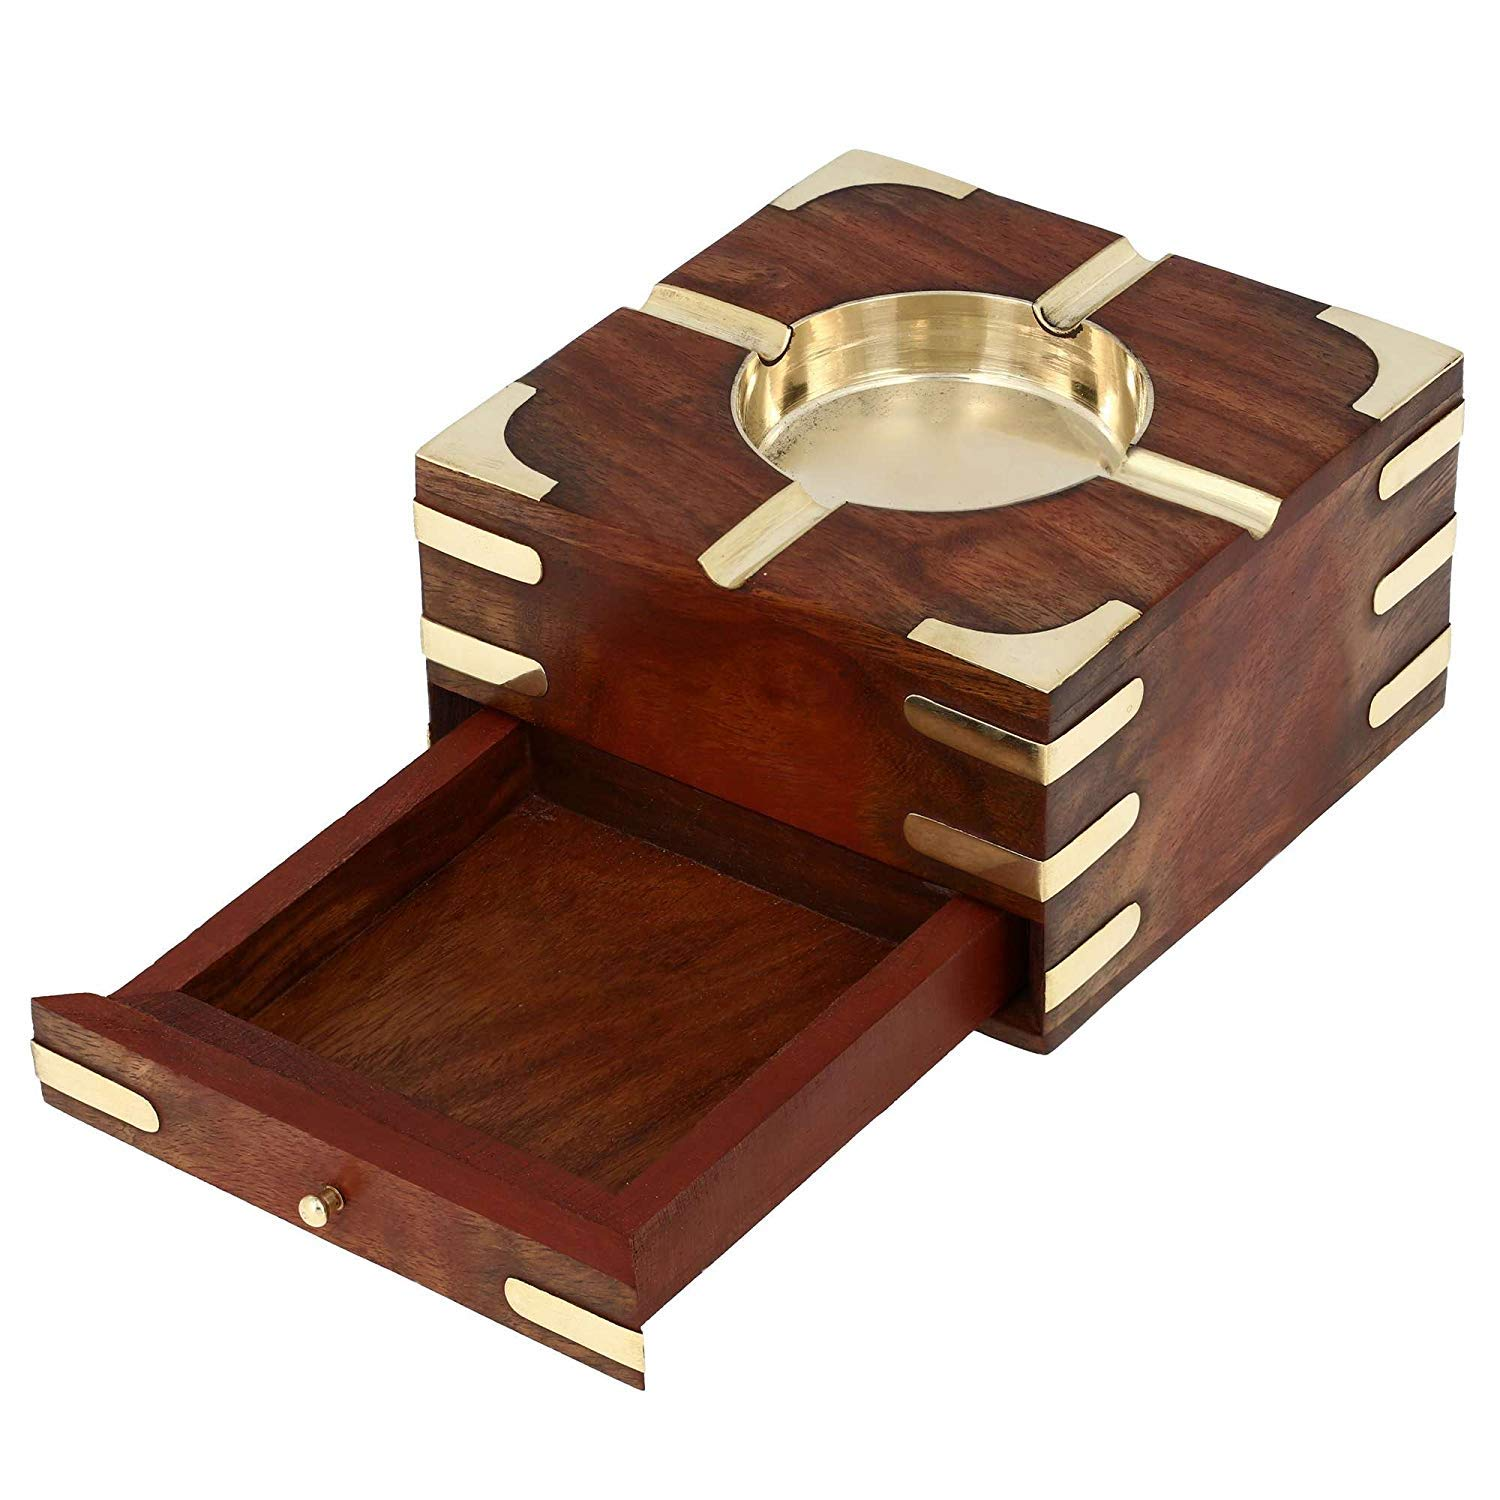 Handcrafted Cigarette Smoking Wooden Ashtray With Compartment For Home Living Room Office Patio Poker Coffee Tabletop For Cigarettes Unique Vintage Decorative Square Indoor Outdoor Ash Holder